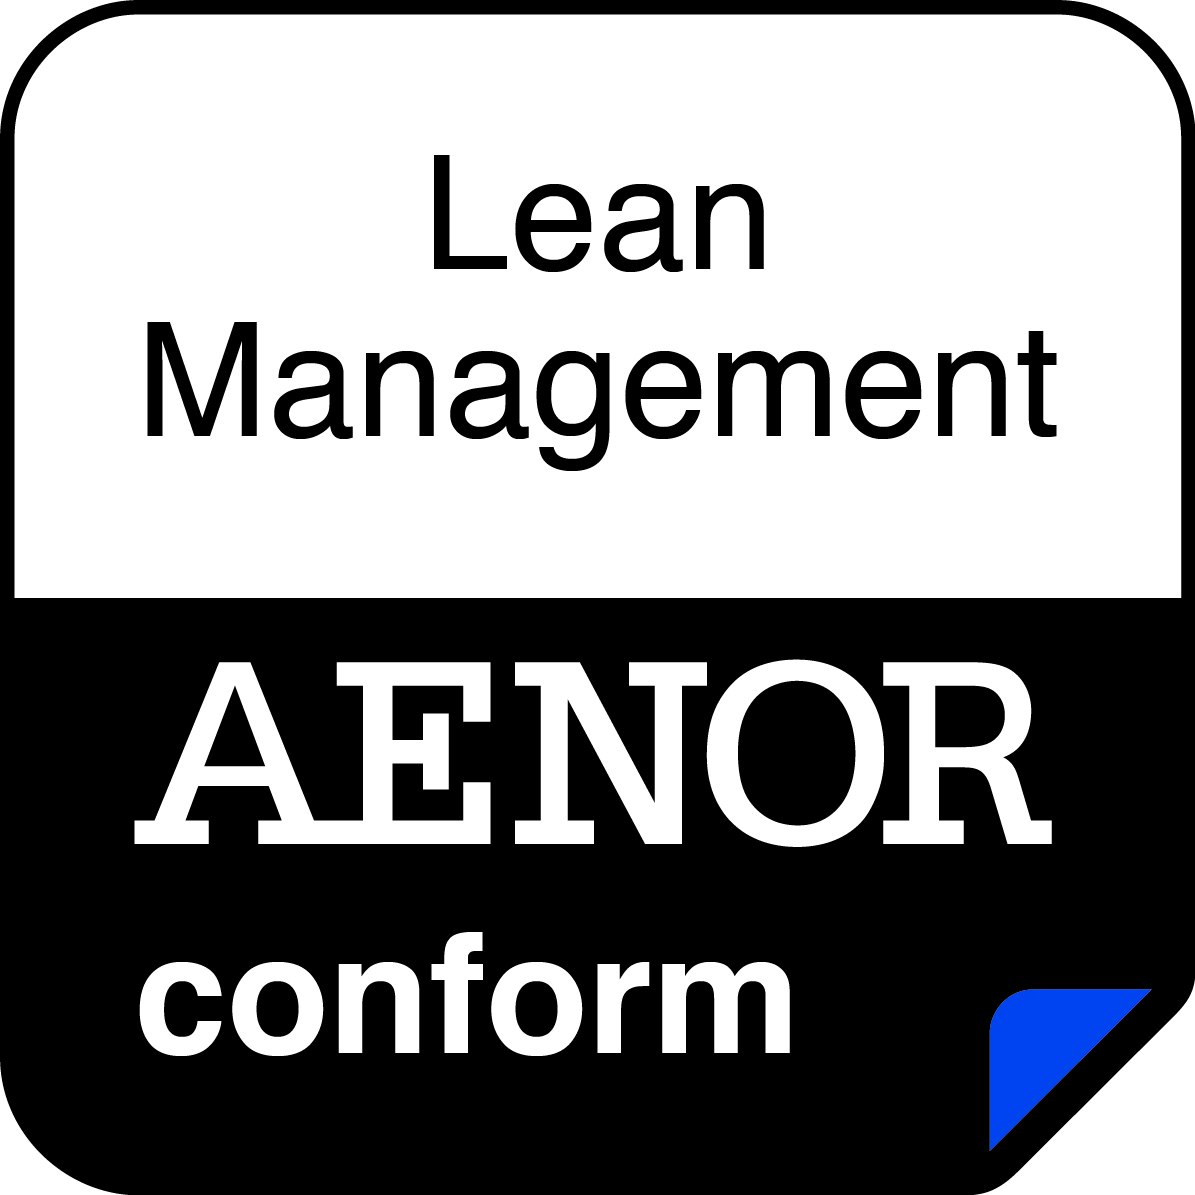 Certificado AENOR de Lean management.